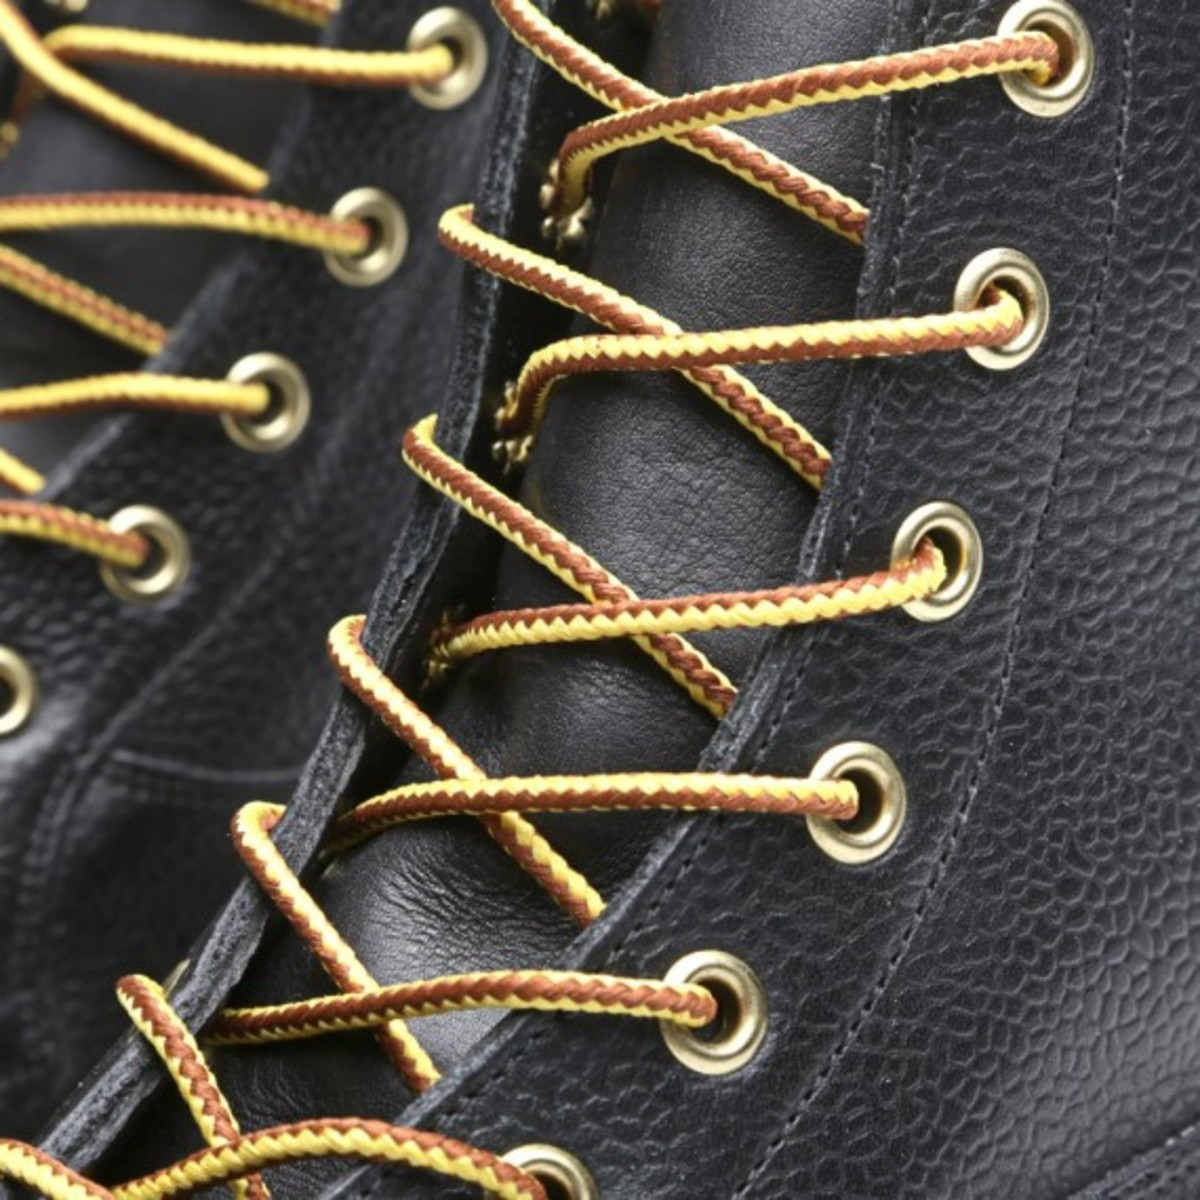 end-trickers-two-tone-capped-super-boot-15